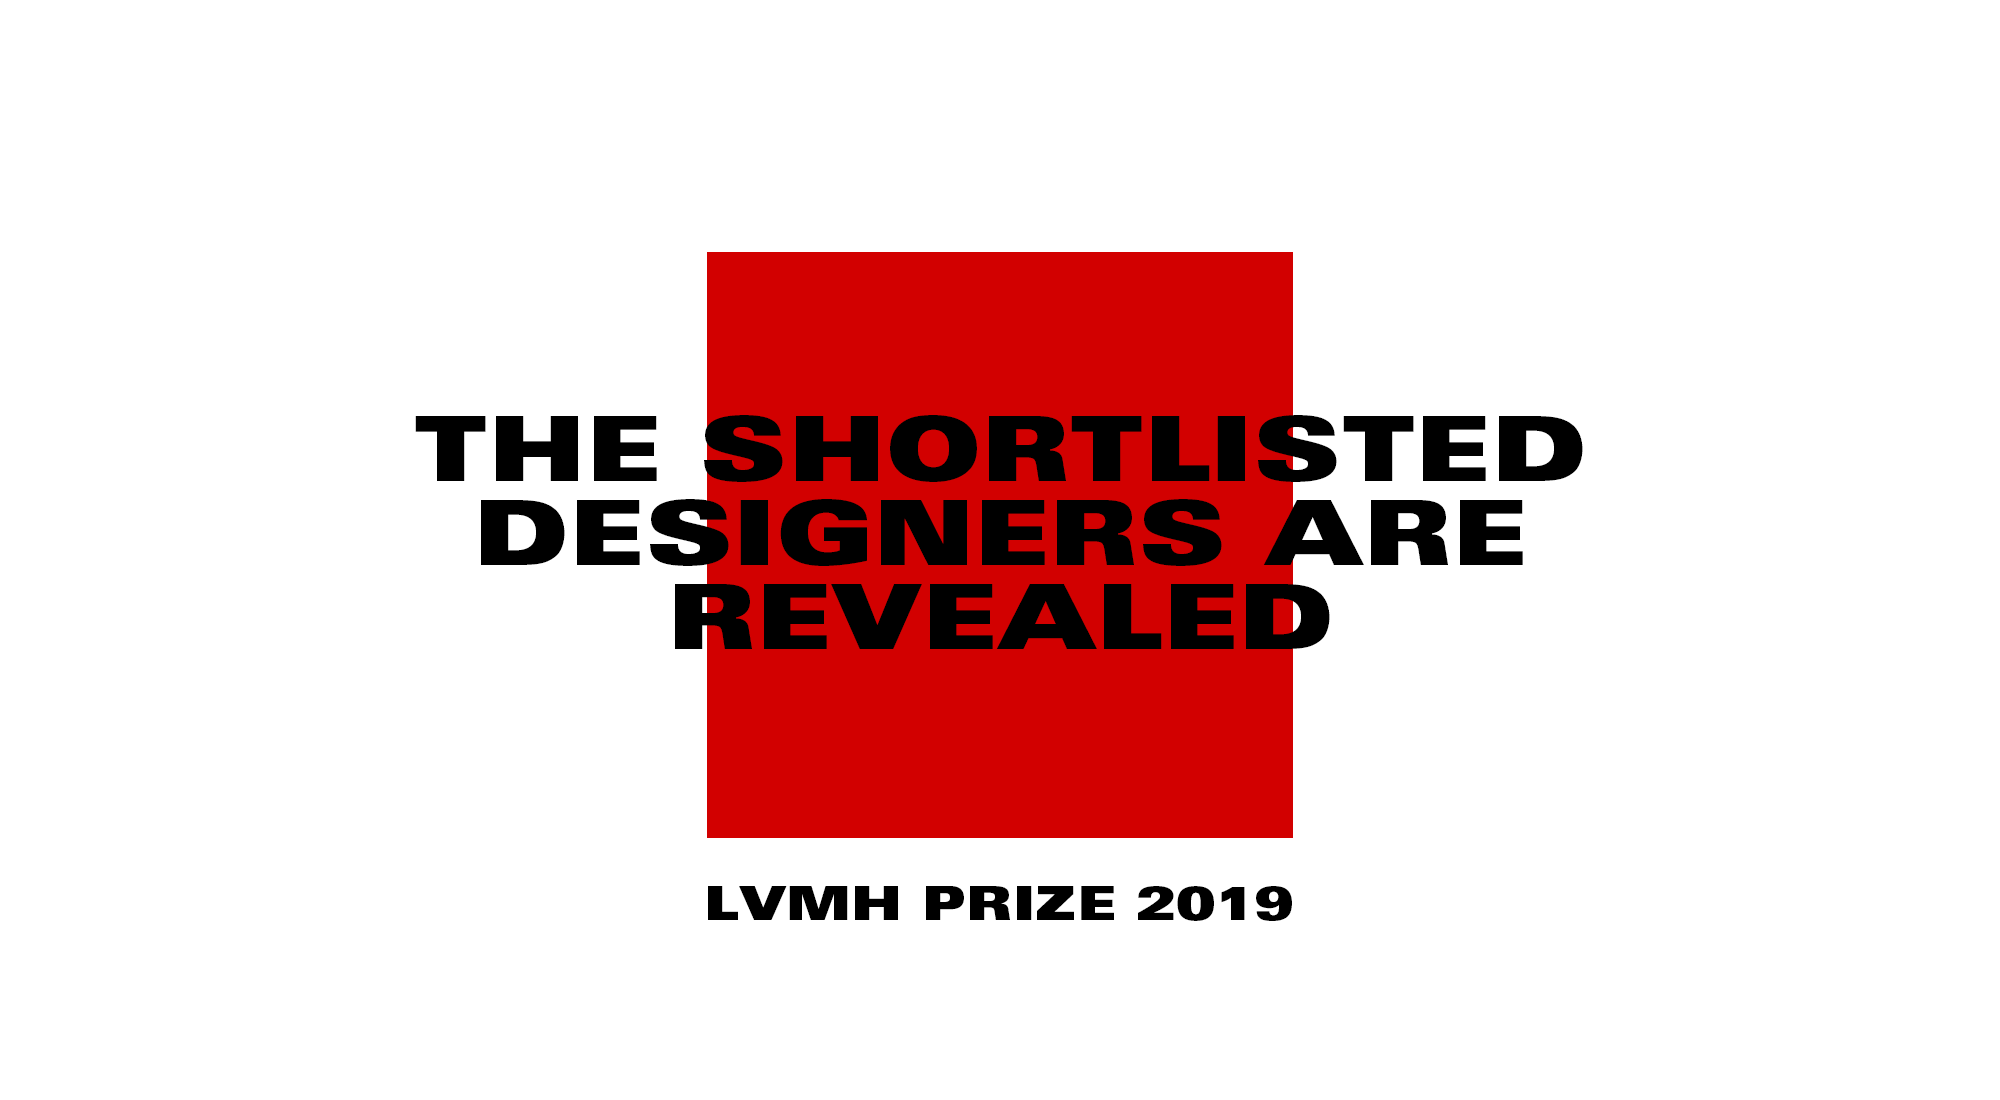 Lvmh Prize For Young Fashion Designers Lvmh Reveals The List Of The 20 Designers Shortlisted For The Semi Final Held On March 1st And 2nd 2019 Lvmh